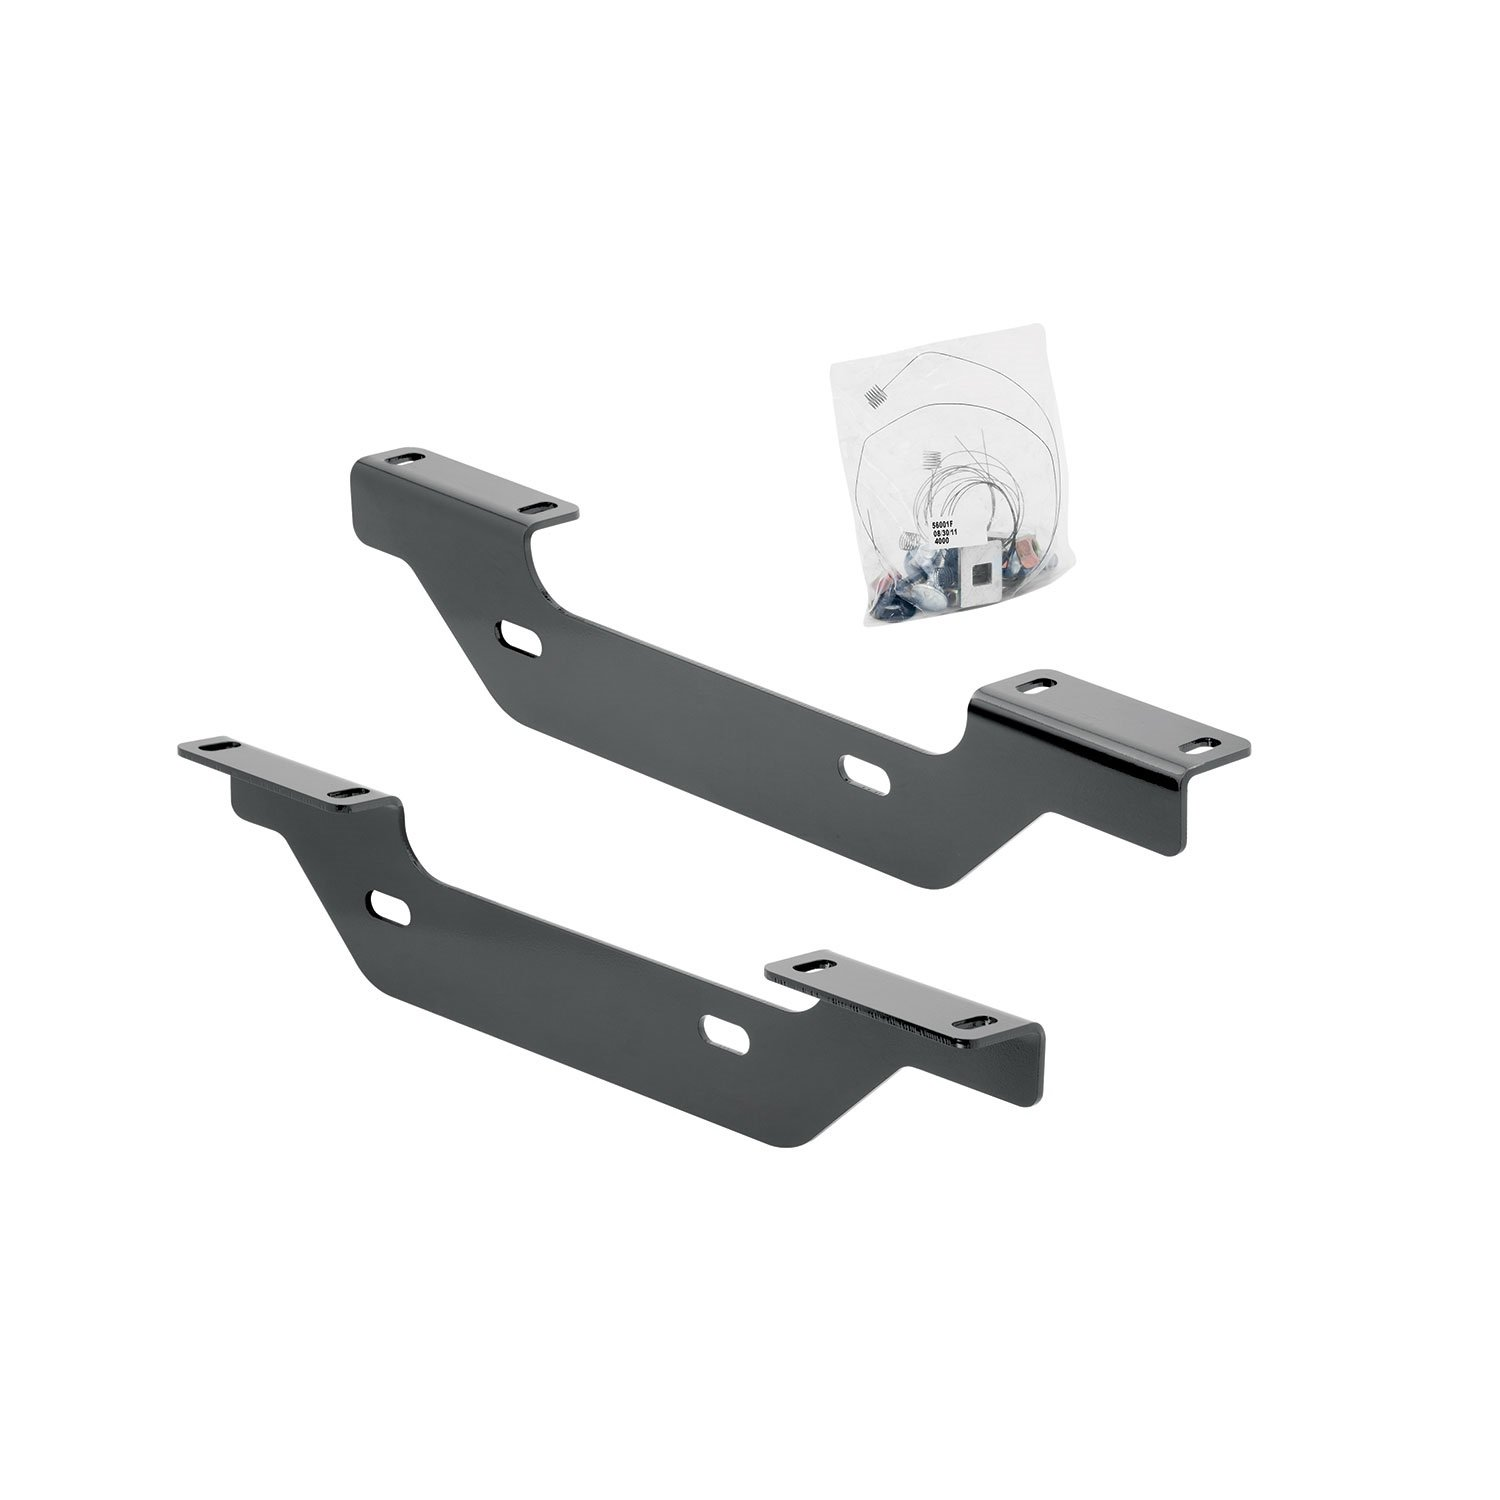 Reese Towpower 56001 Fifth Wheel Custom Quick Installation Bracket by Reese Towpower